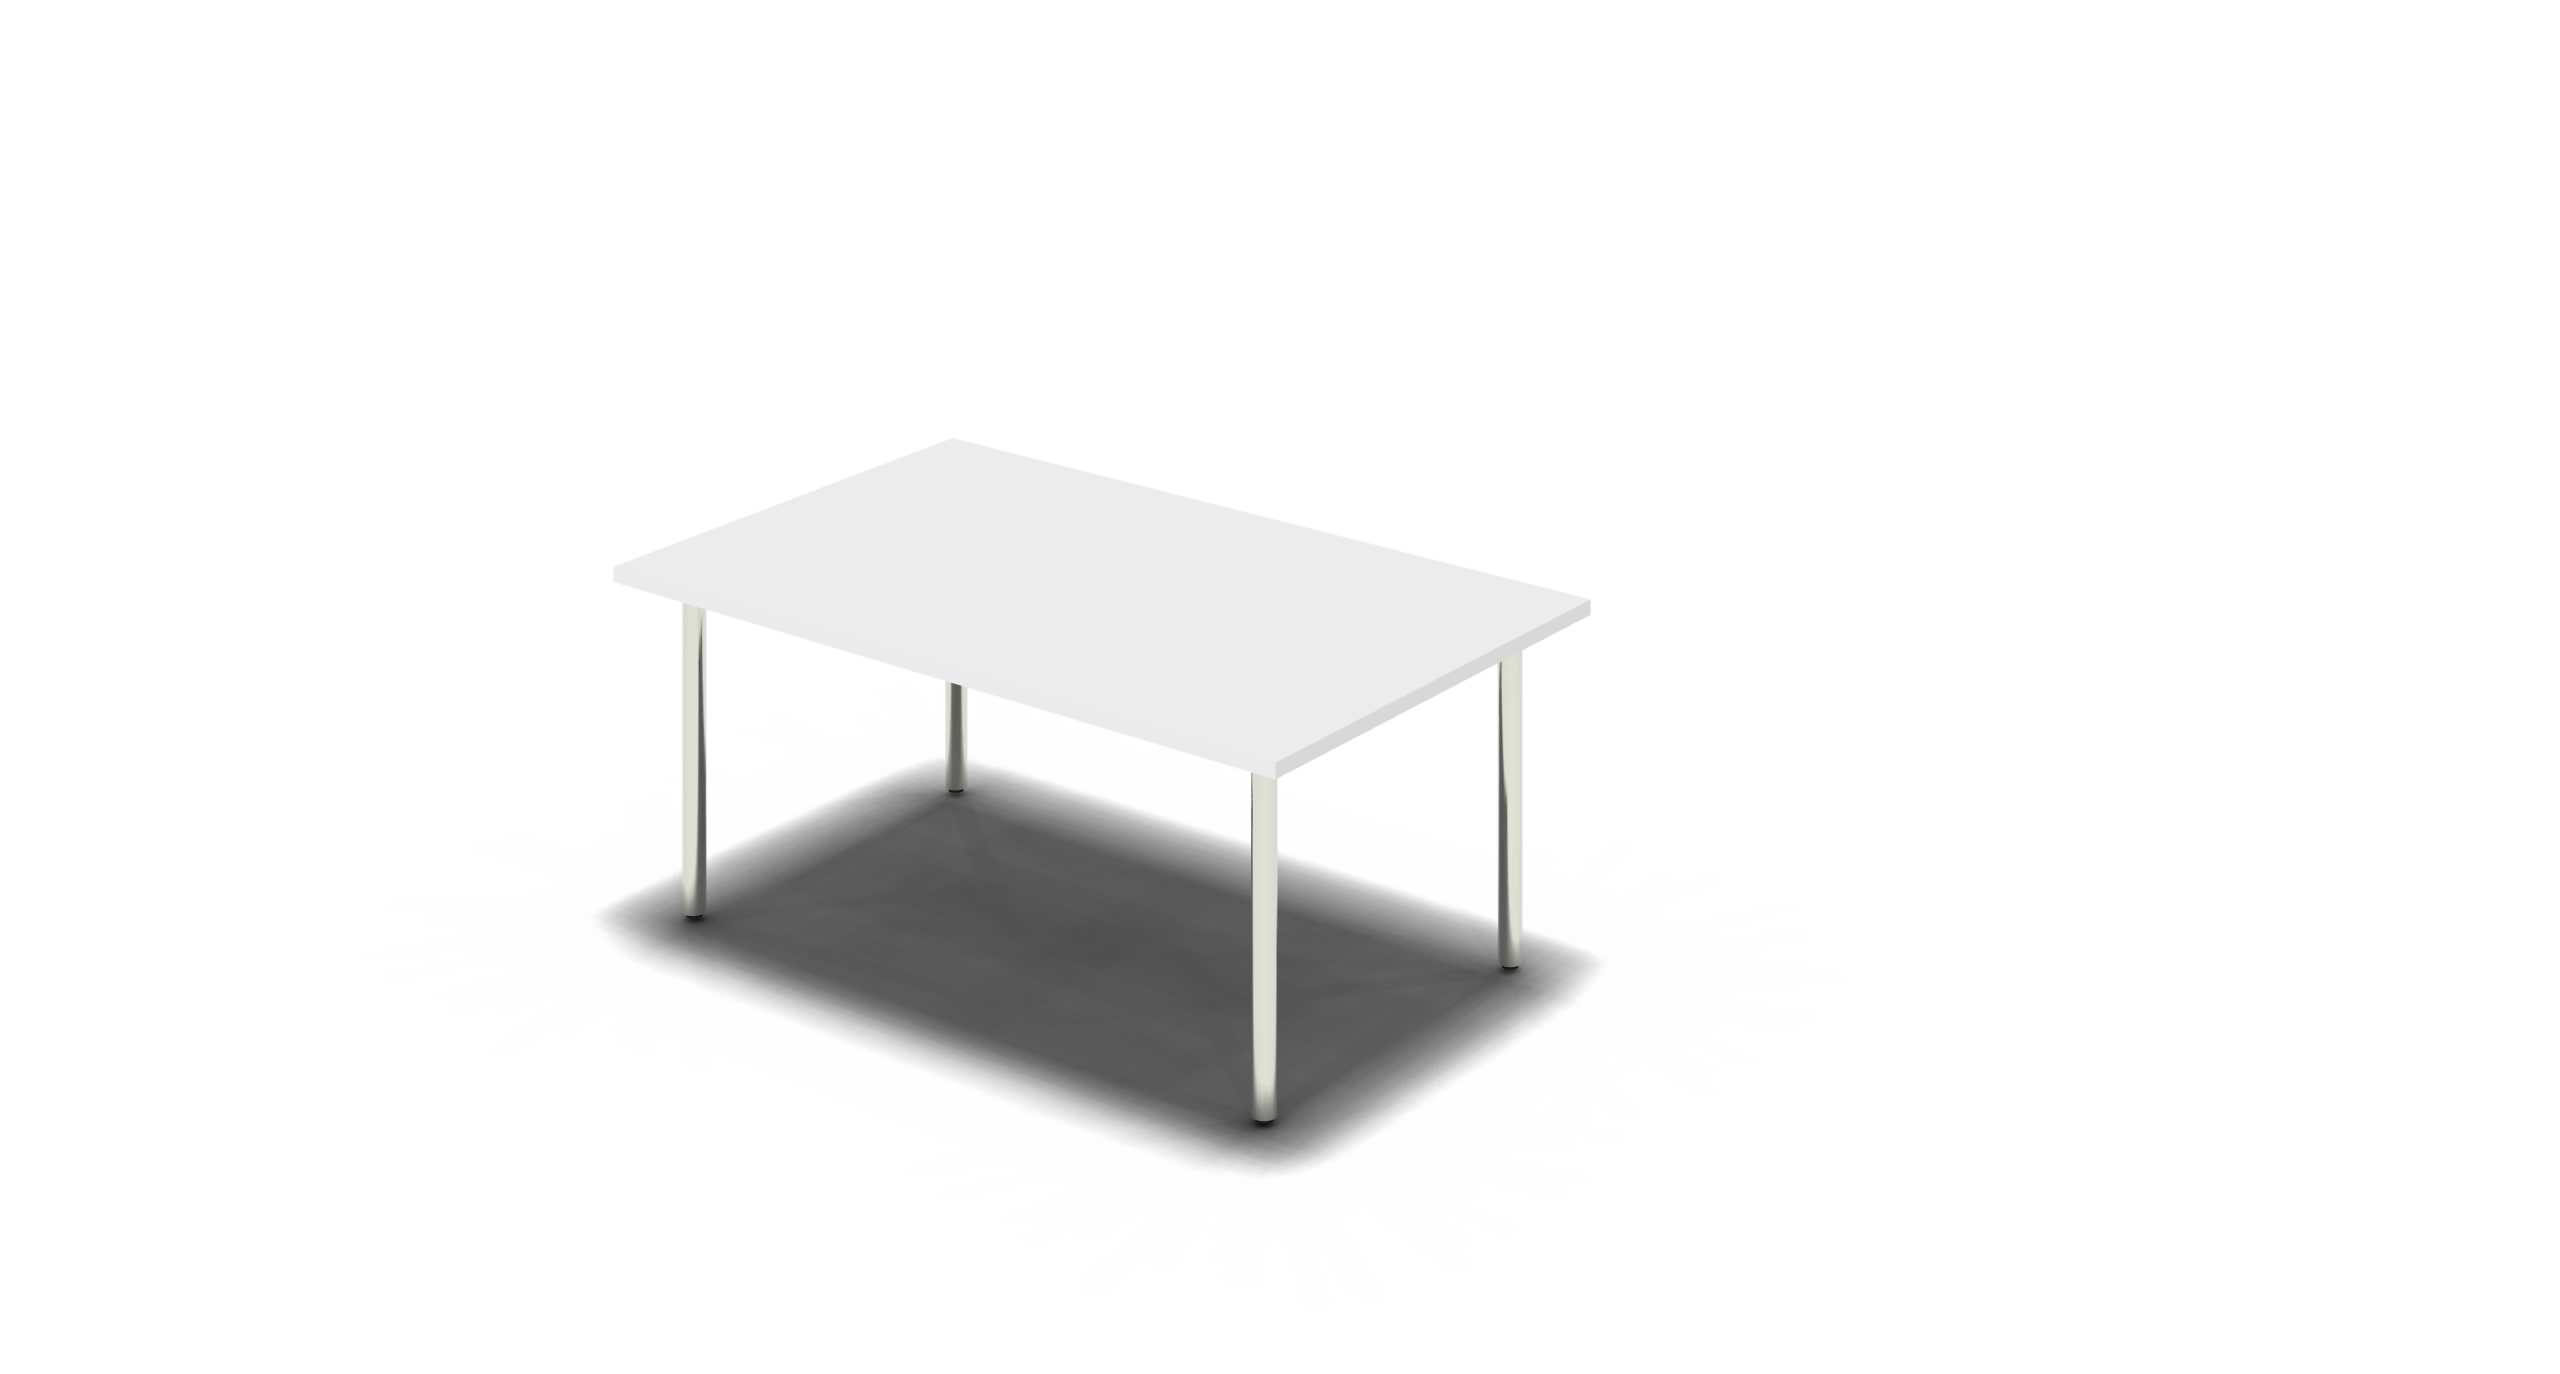 Table_Round_1500x900_Chrome_White_noOption